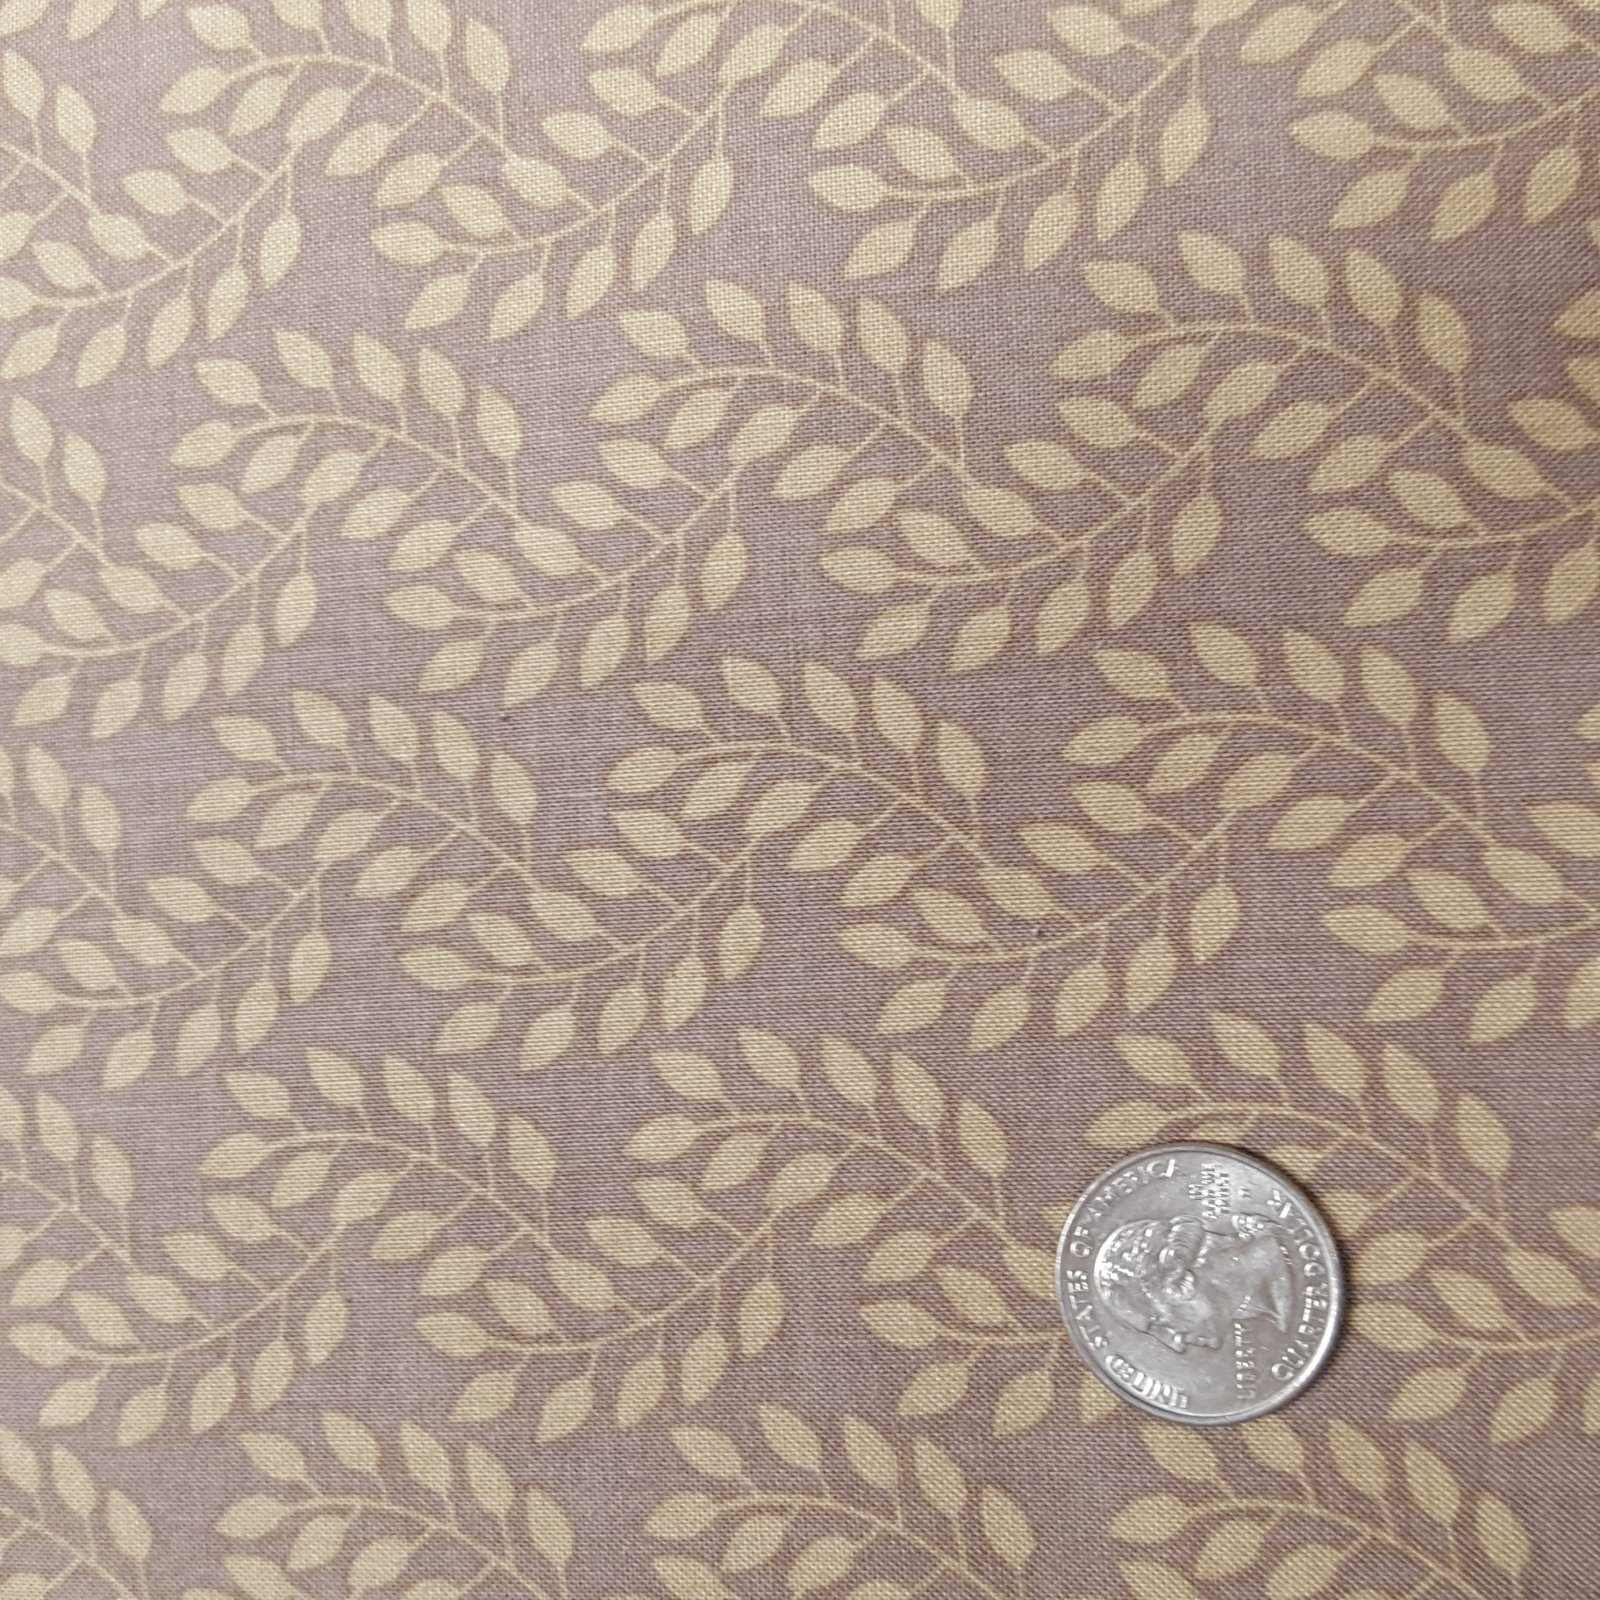 Flourish Leaves in Dark Taupe - 3240207-01